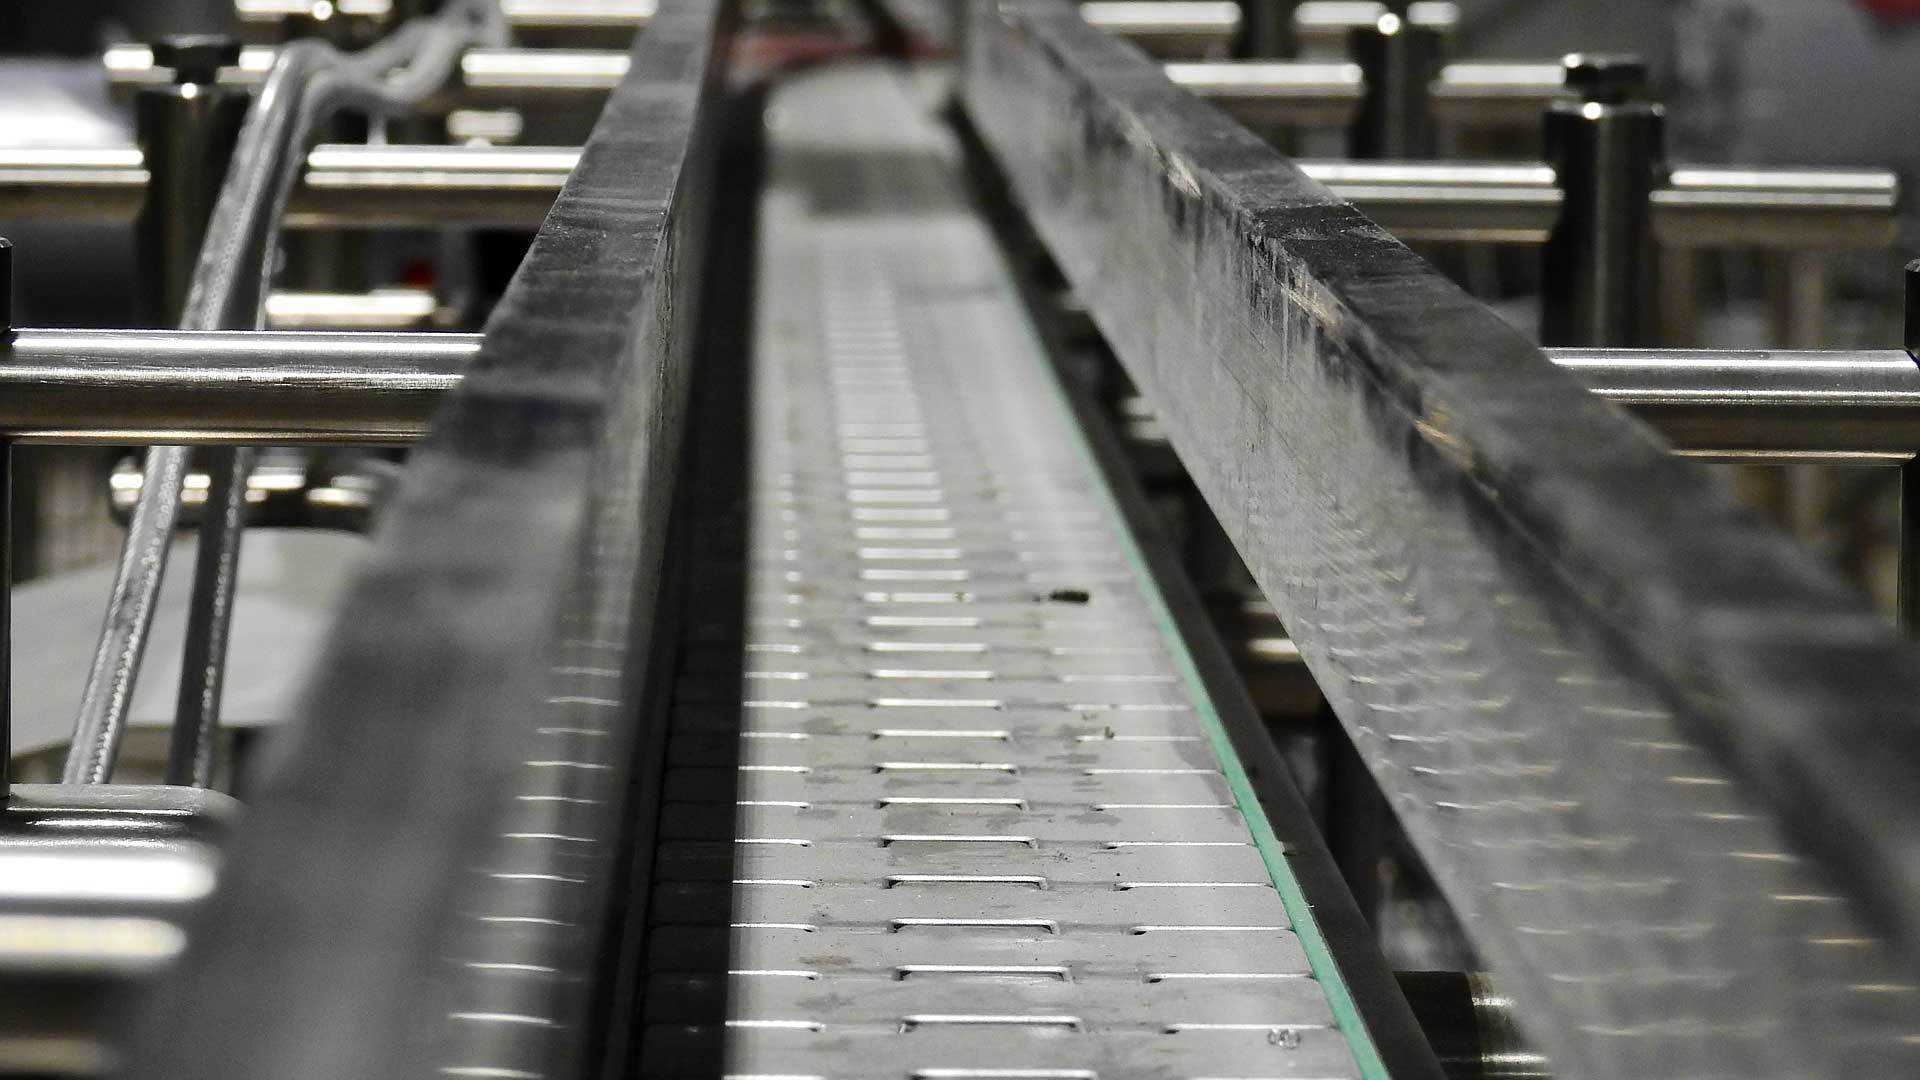 What-You-Need-to-Know-About-Conveyor-Belt-System-on-99insight